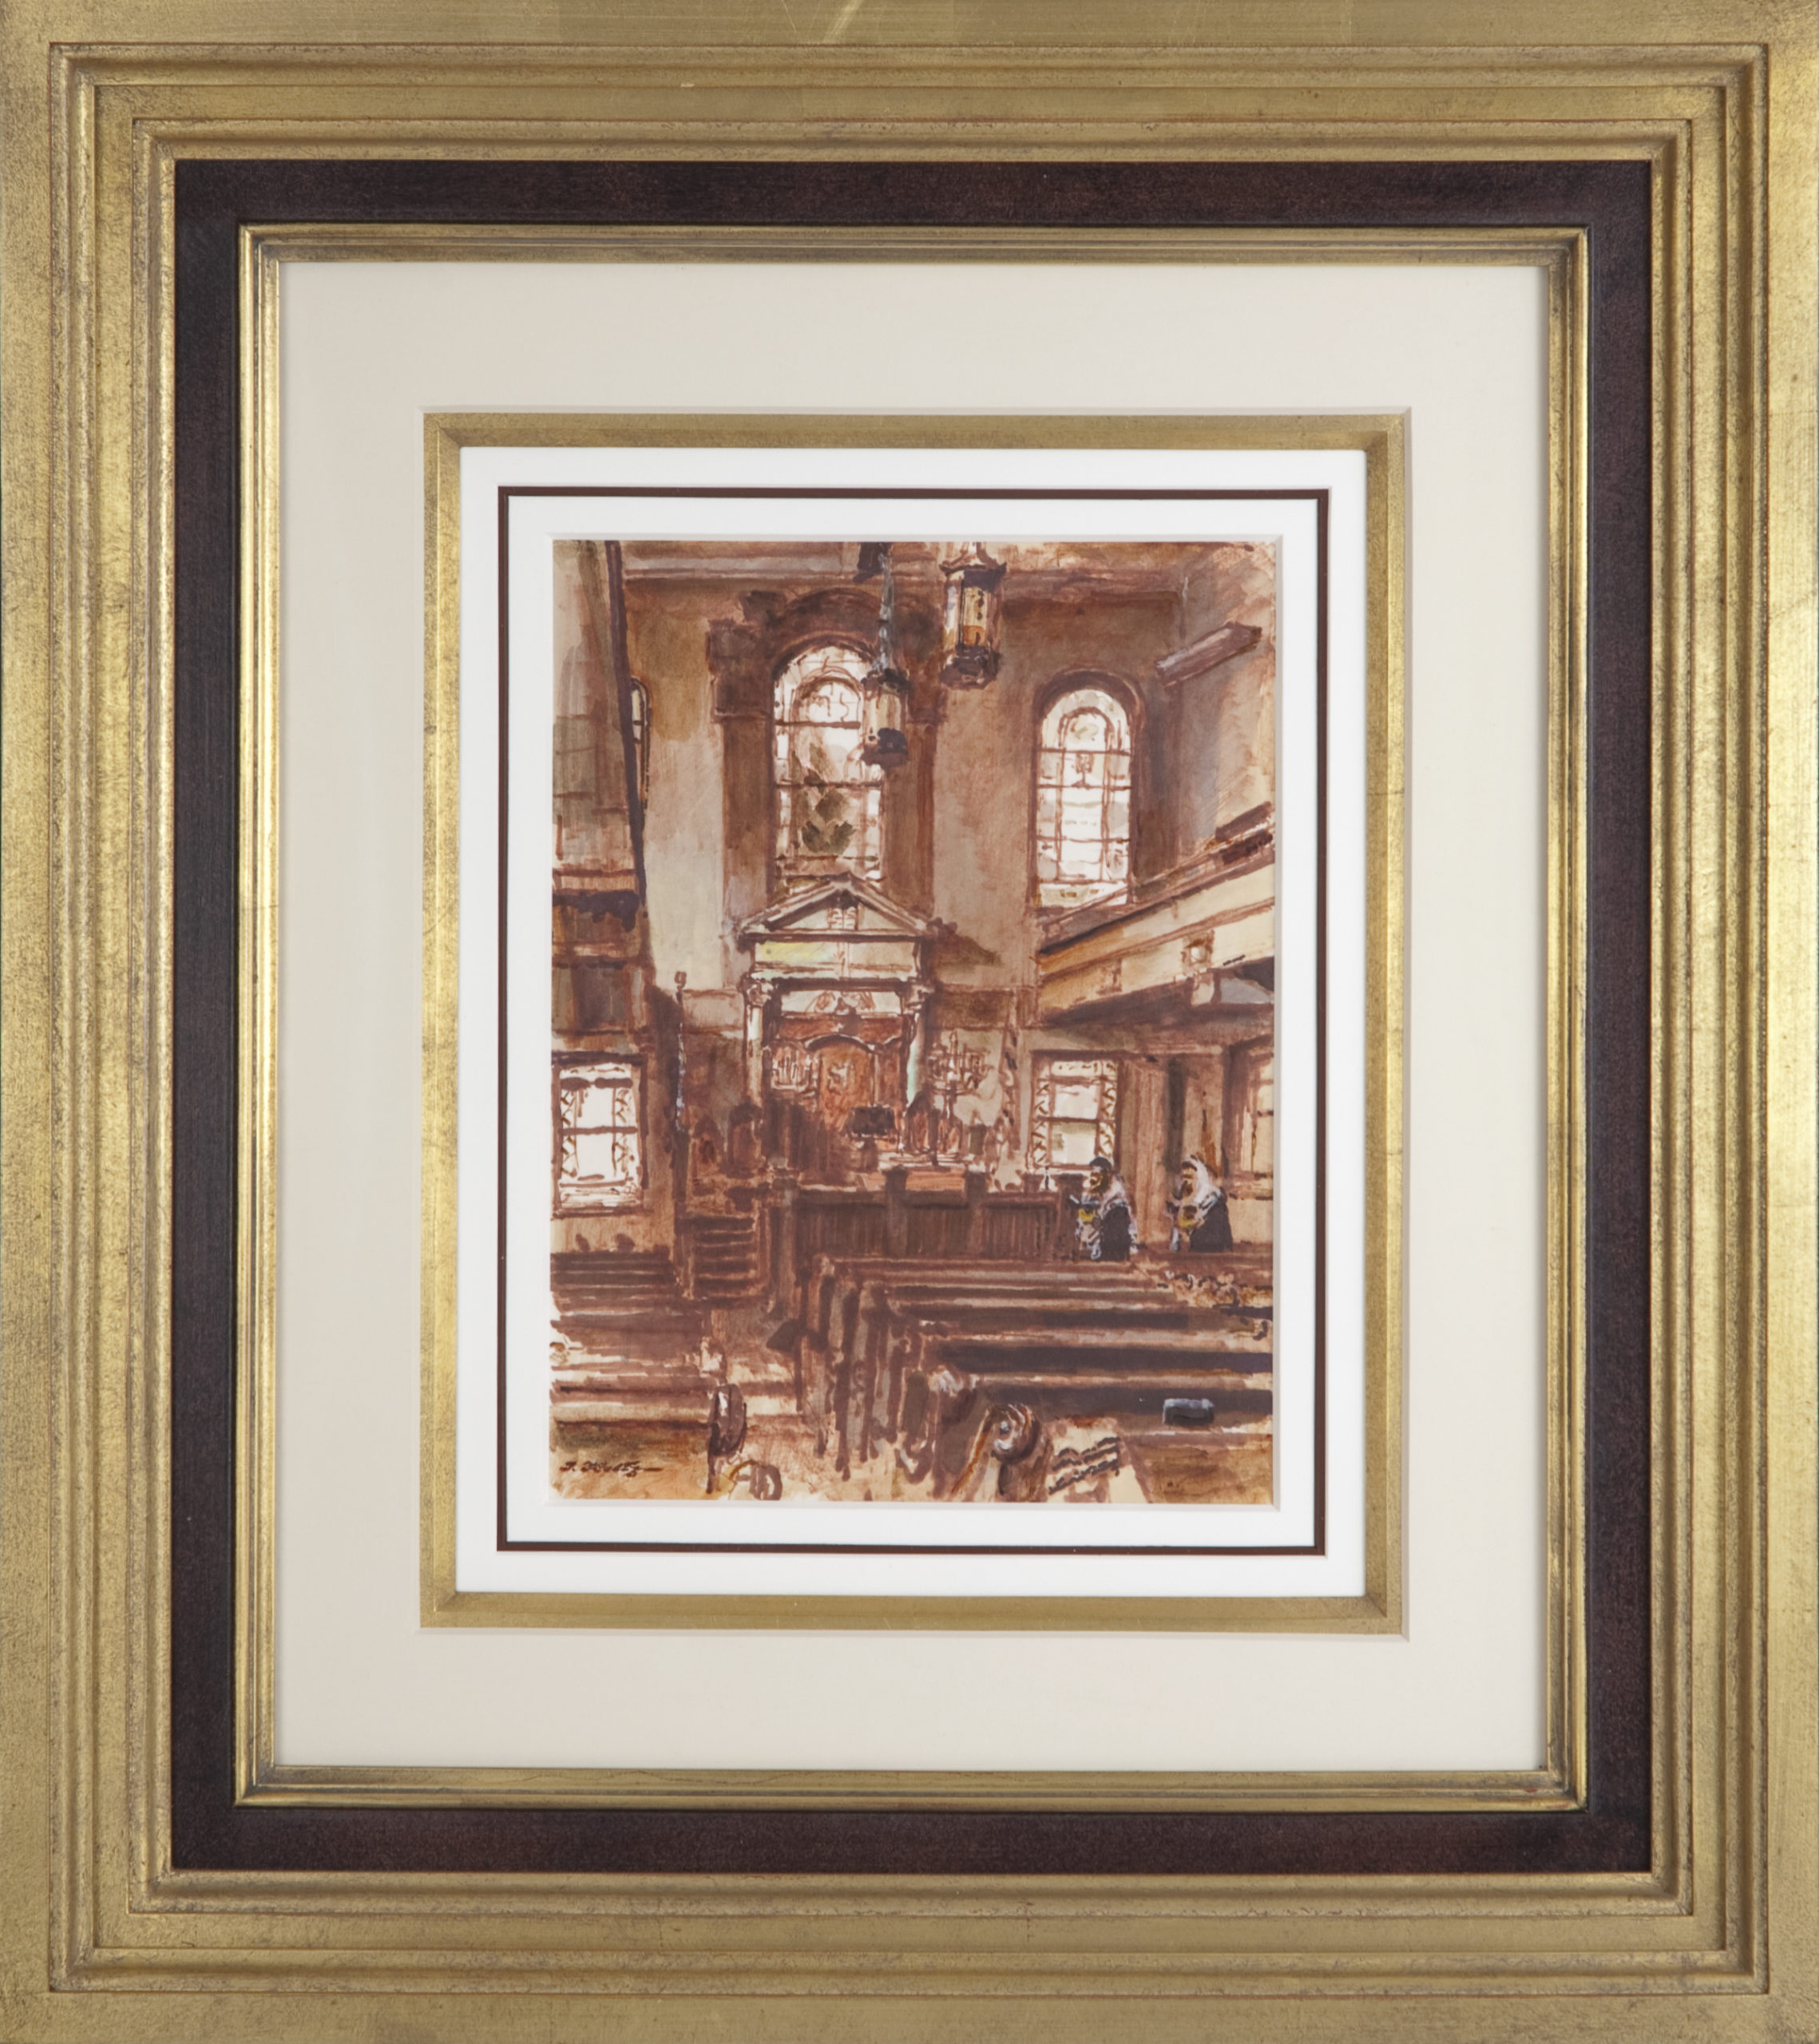 080 Washington Heights Synagogue 1971 - Marker - 9 x 12 - Frame: 21.5 x 24.5 x 2.25